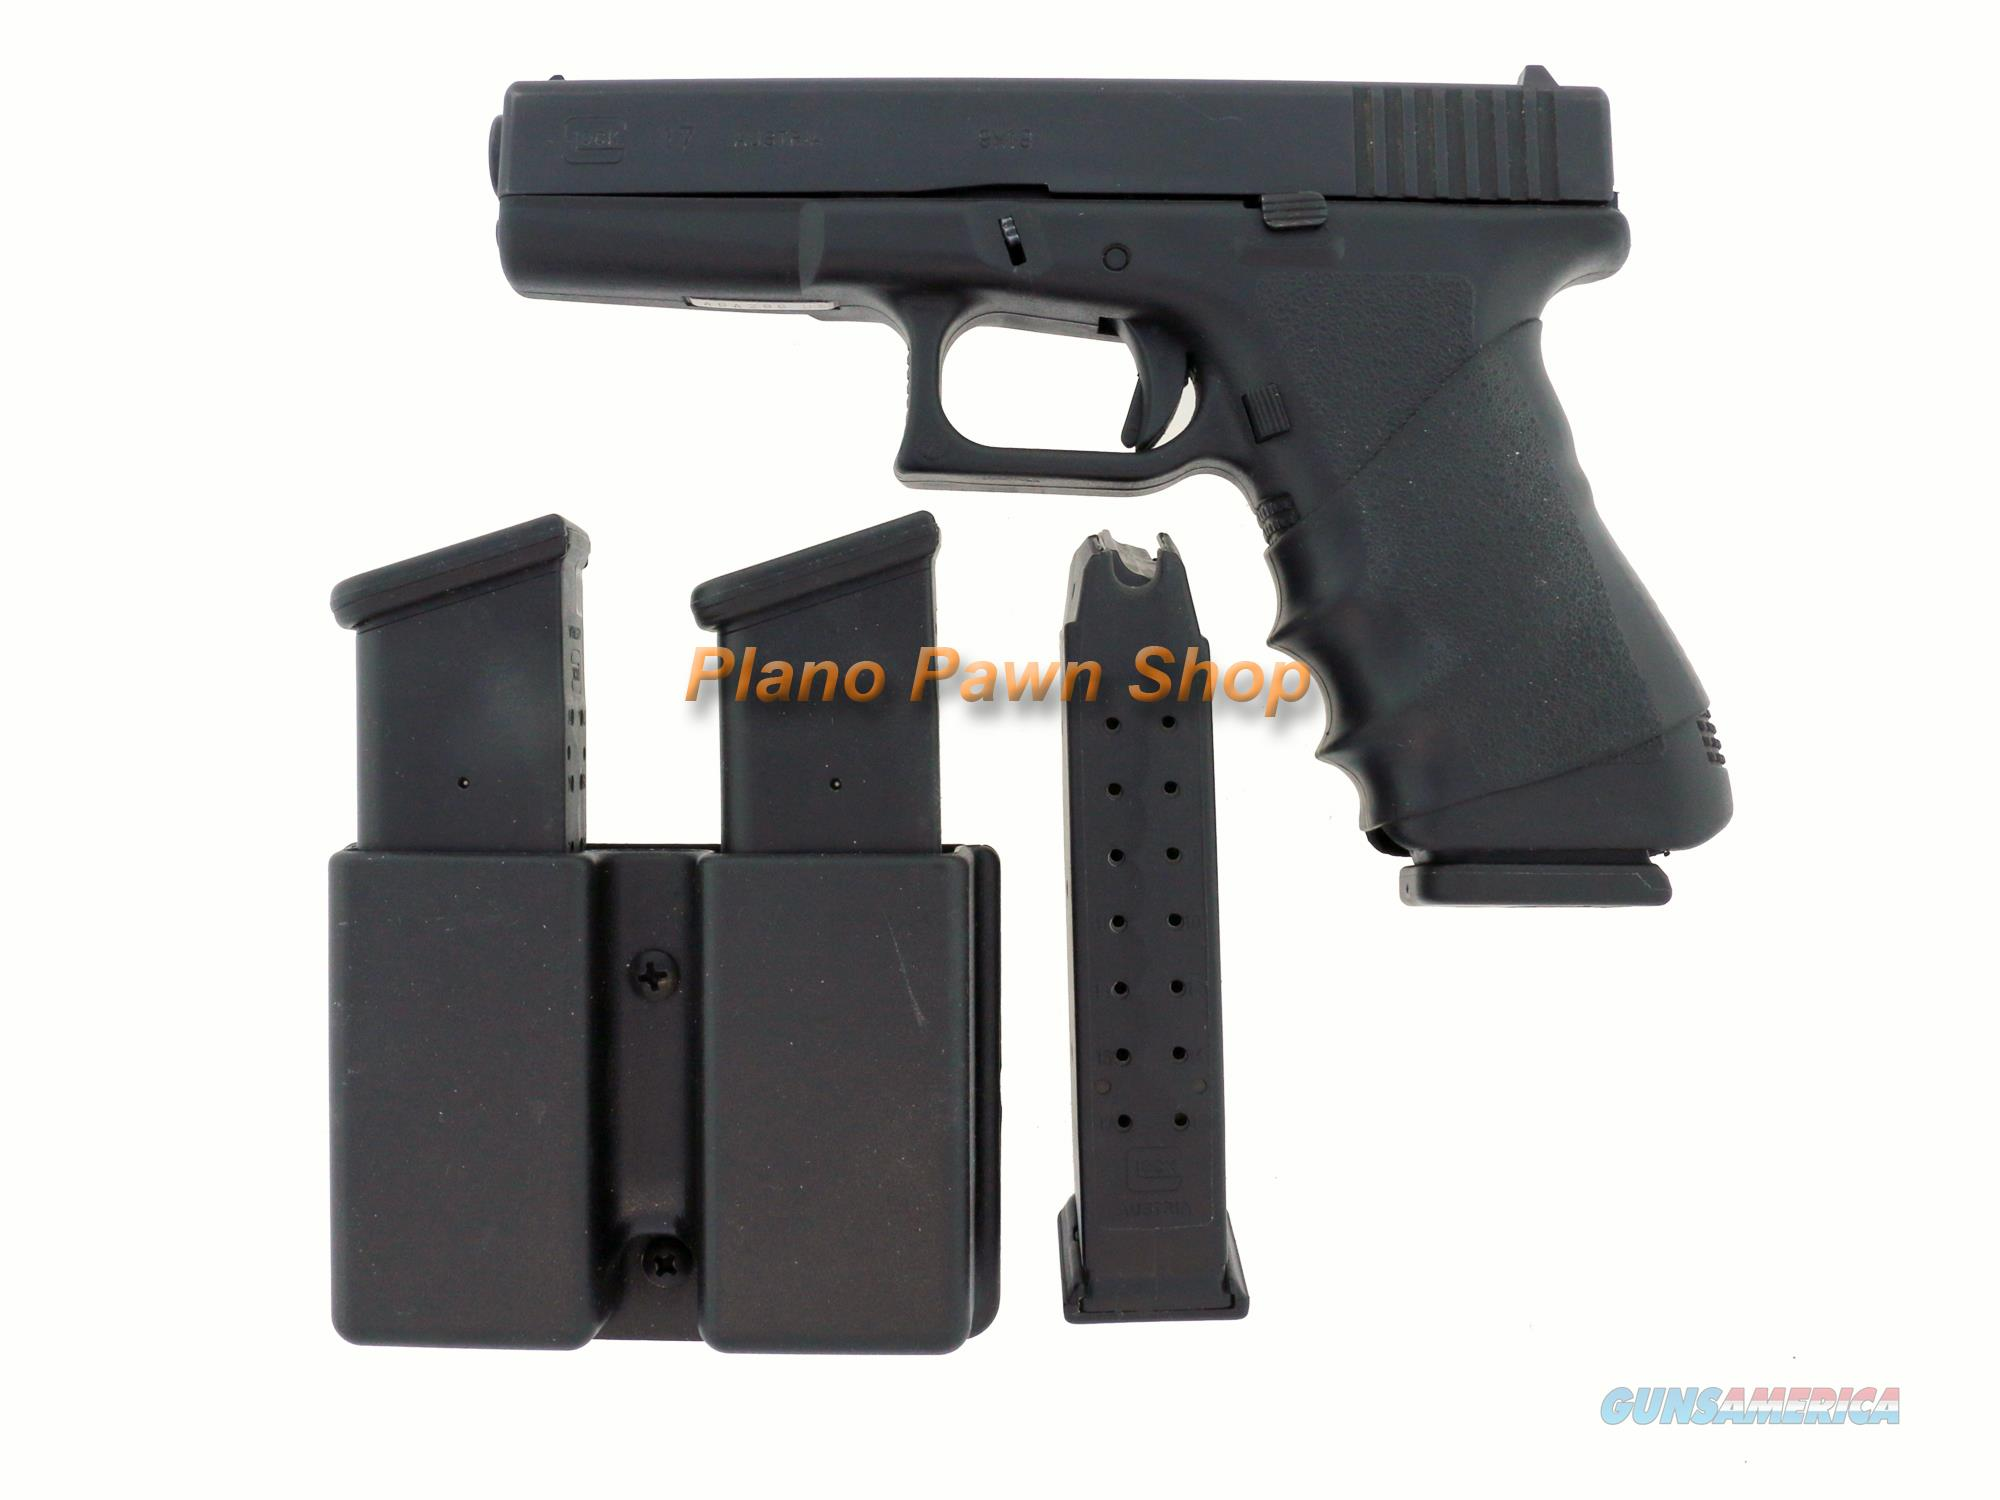 Glock Model 17 9mm with 4 Mags & Mag Holster  Guns > Pistols > Glock Pistols > 17